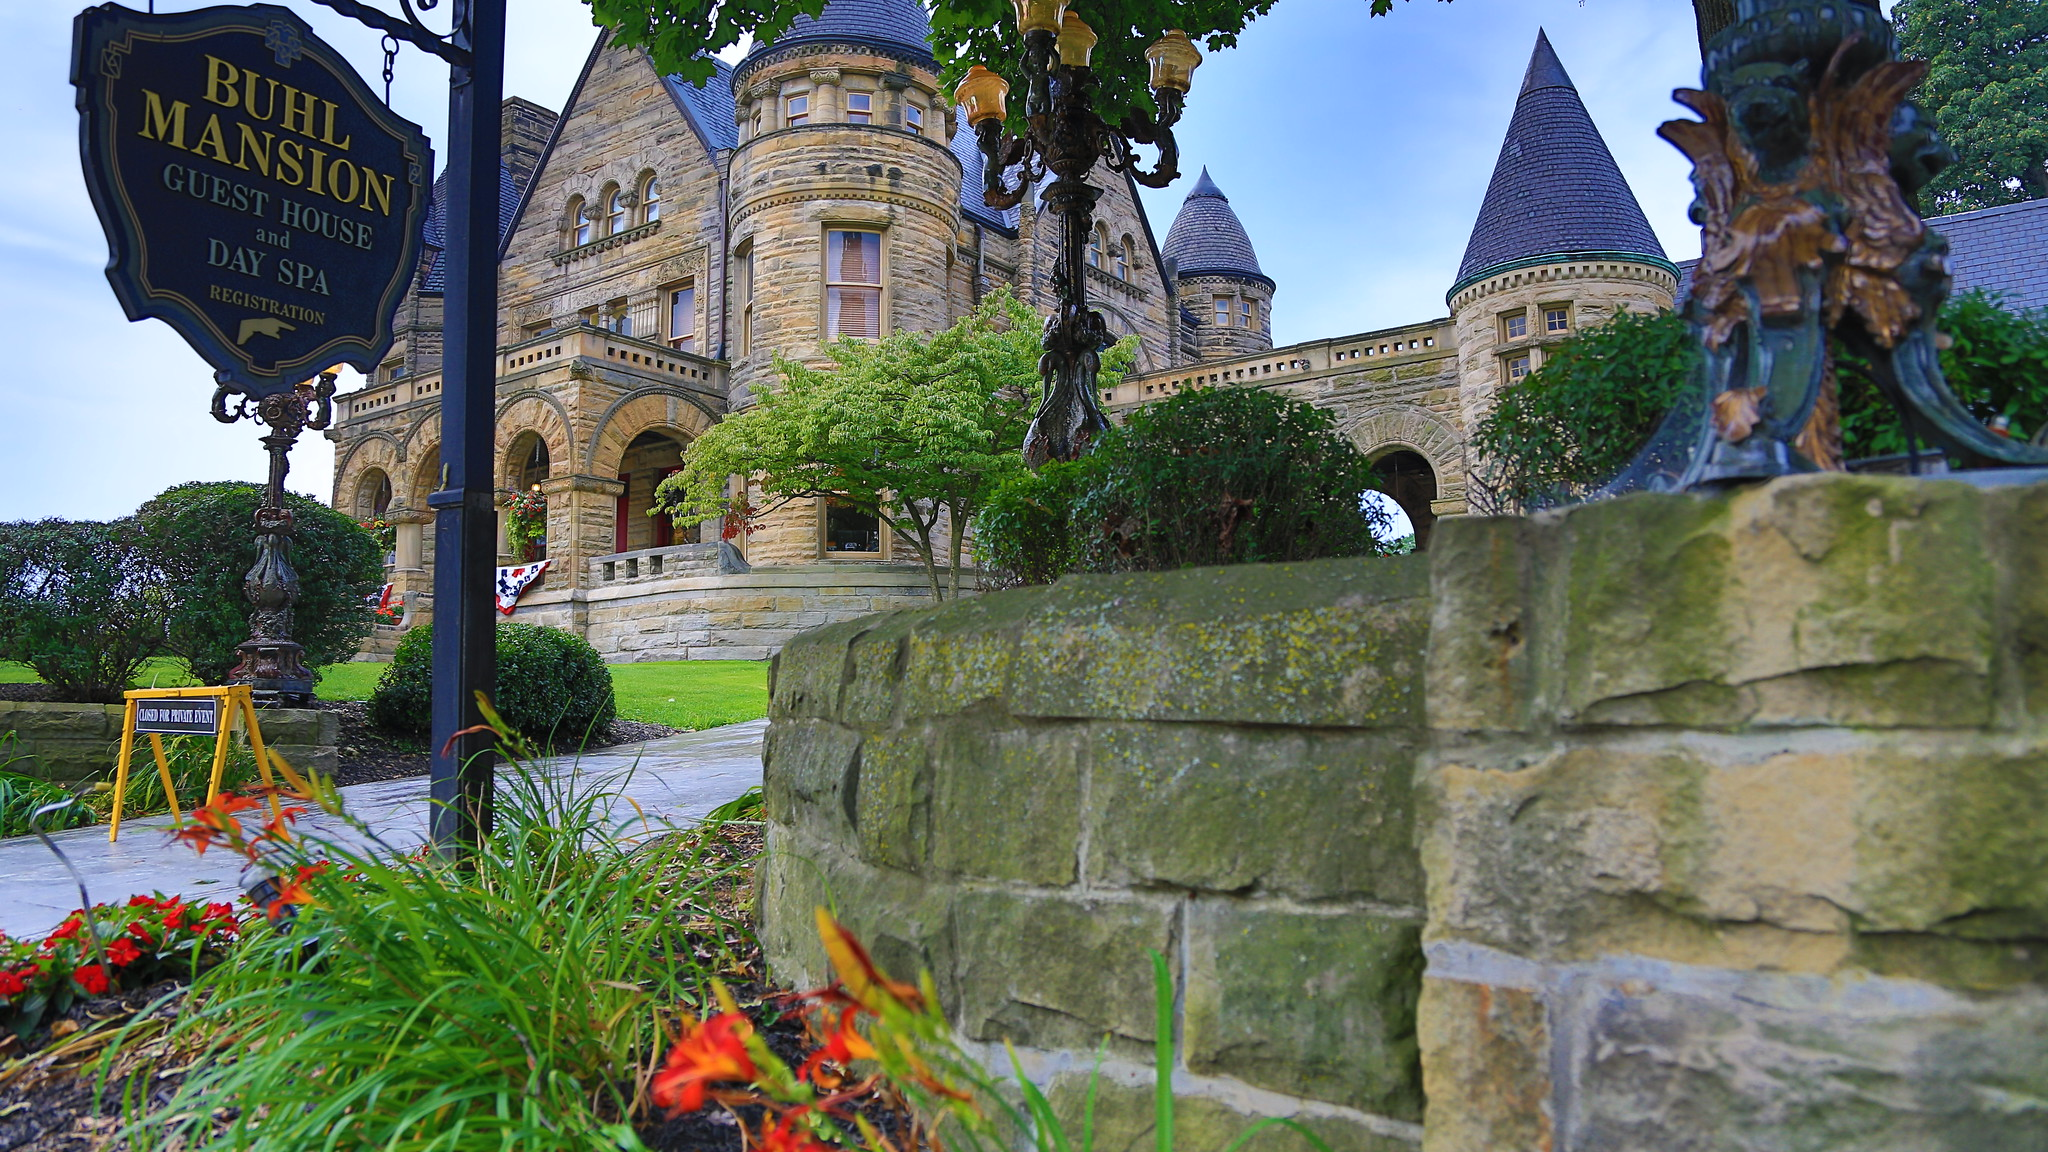 Stay at Buhl Mansion, Guesthouse & Spa - Appropriate Things To Do In Pennsylvania